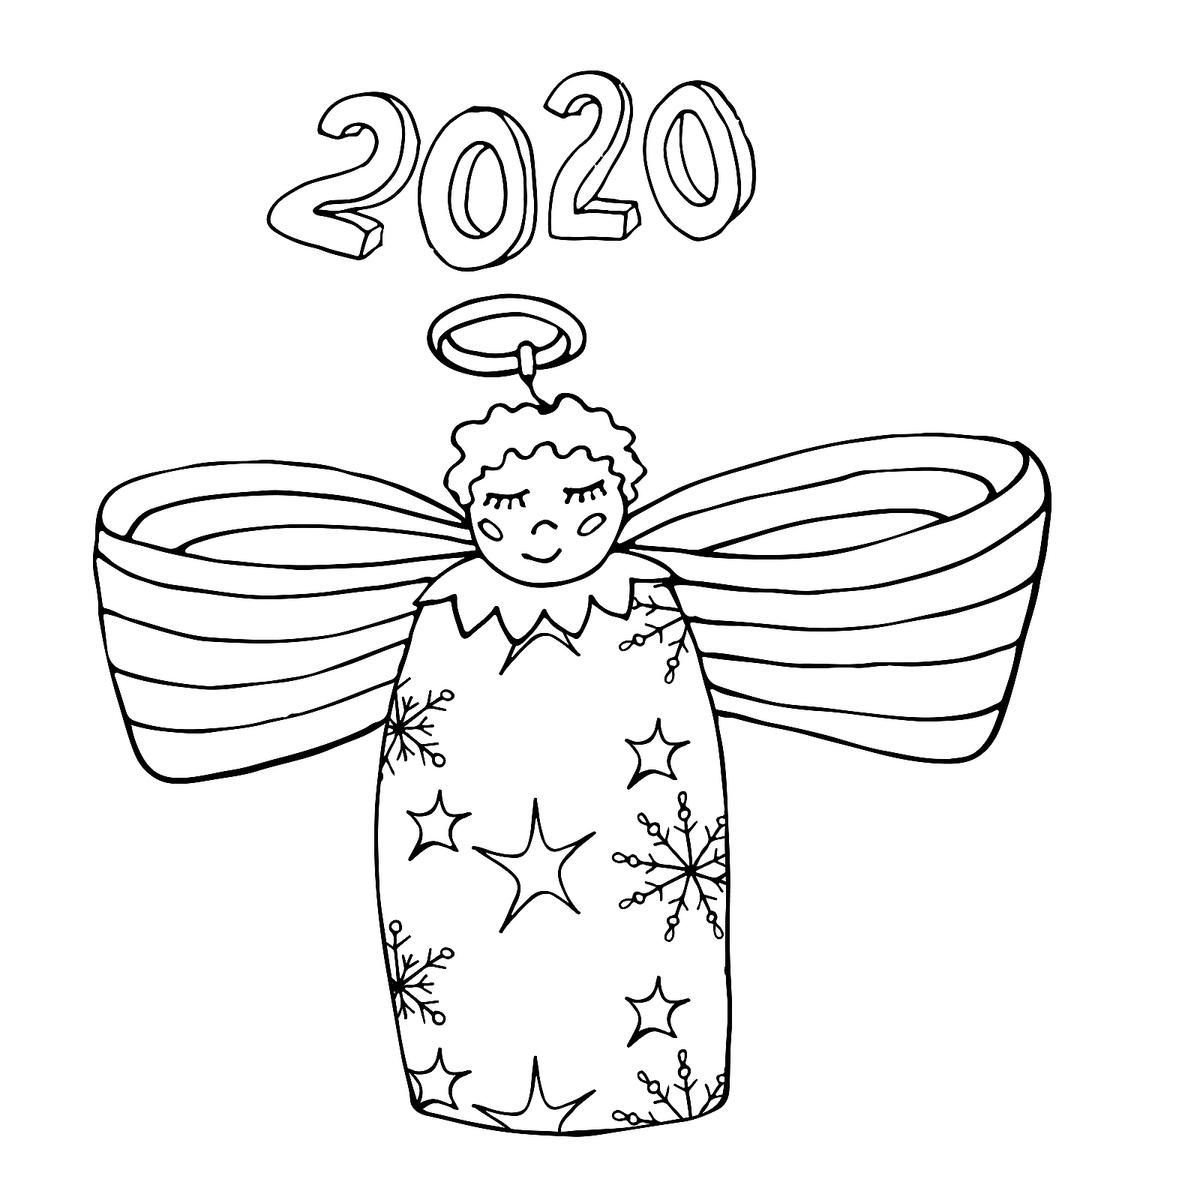 New Year January Coloring Pages Printable Fun To Help Kids Welcome 2020 Printab Witch Coloring Pages Kids Printable Coloring Pages Abstract Coloring Pages